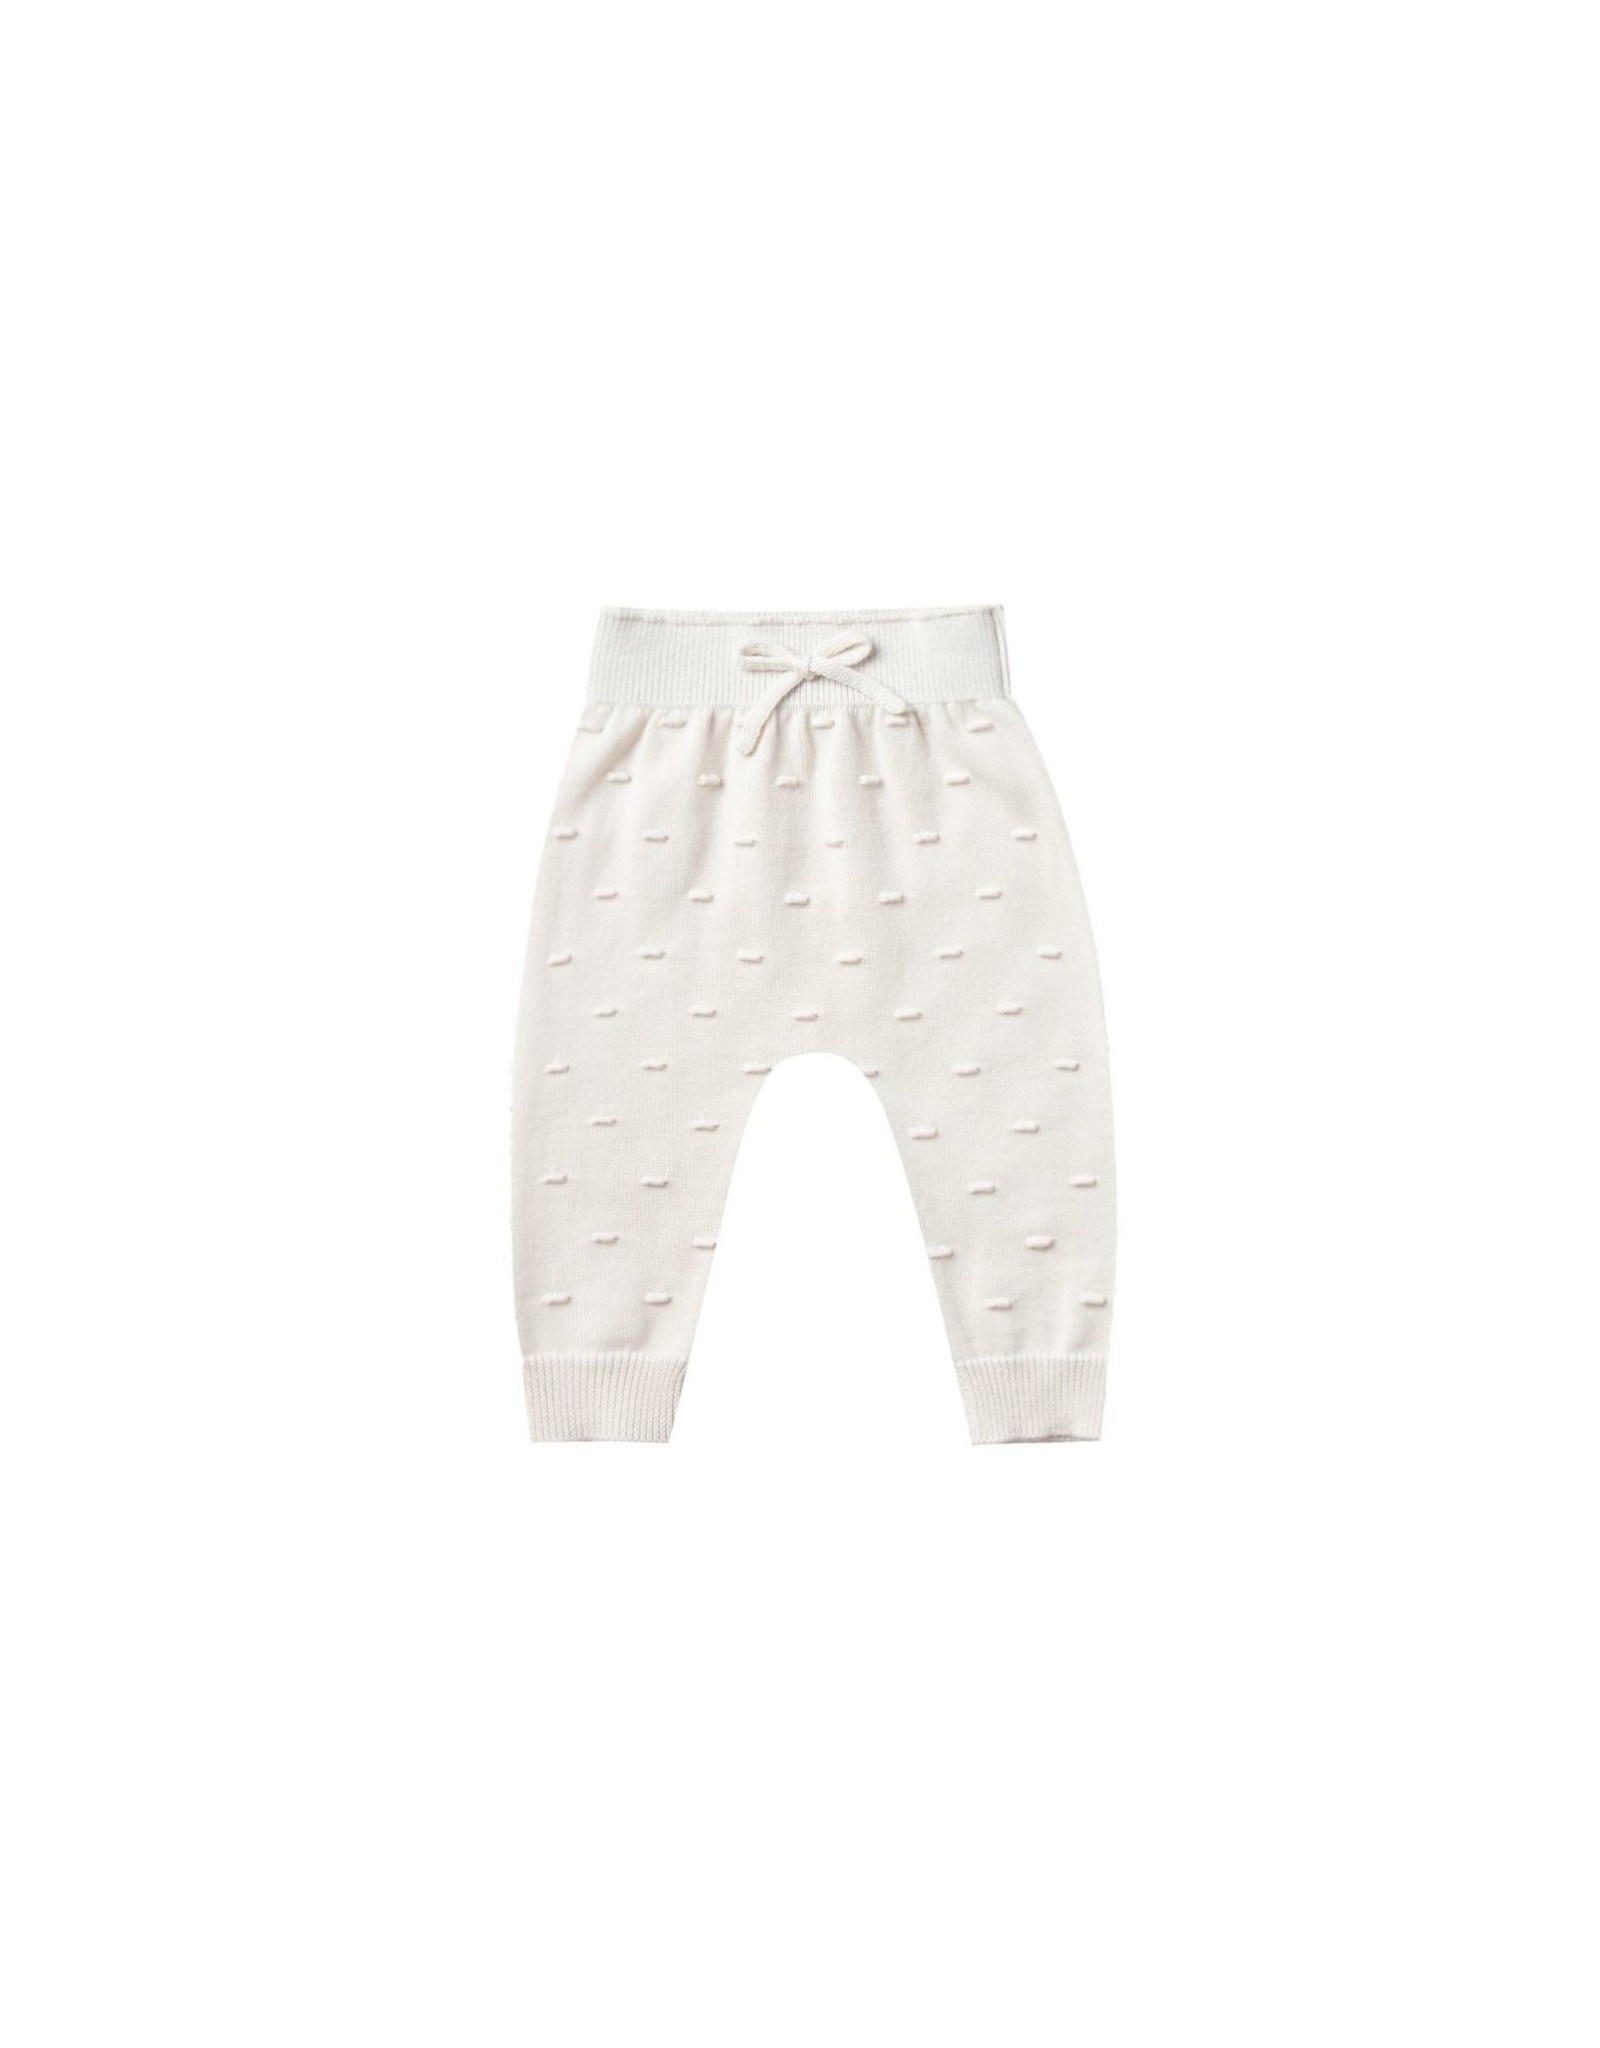 Quincy Mae knit pant- ivory